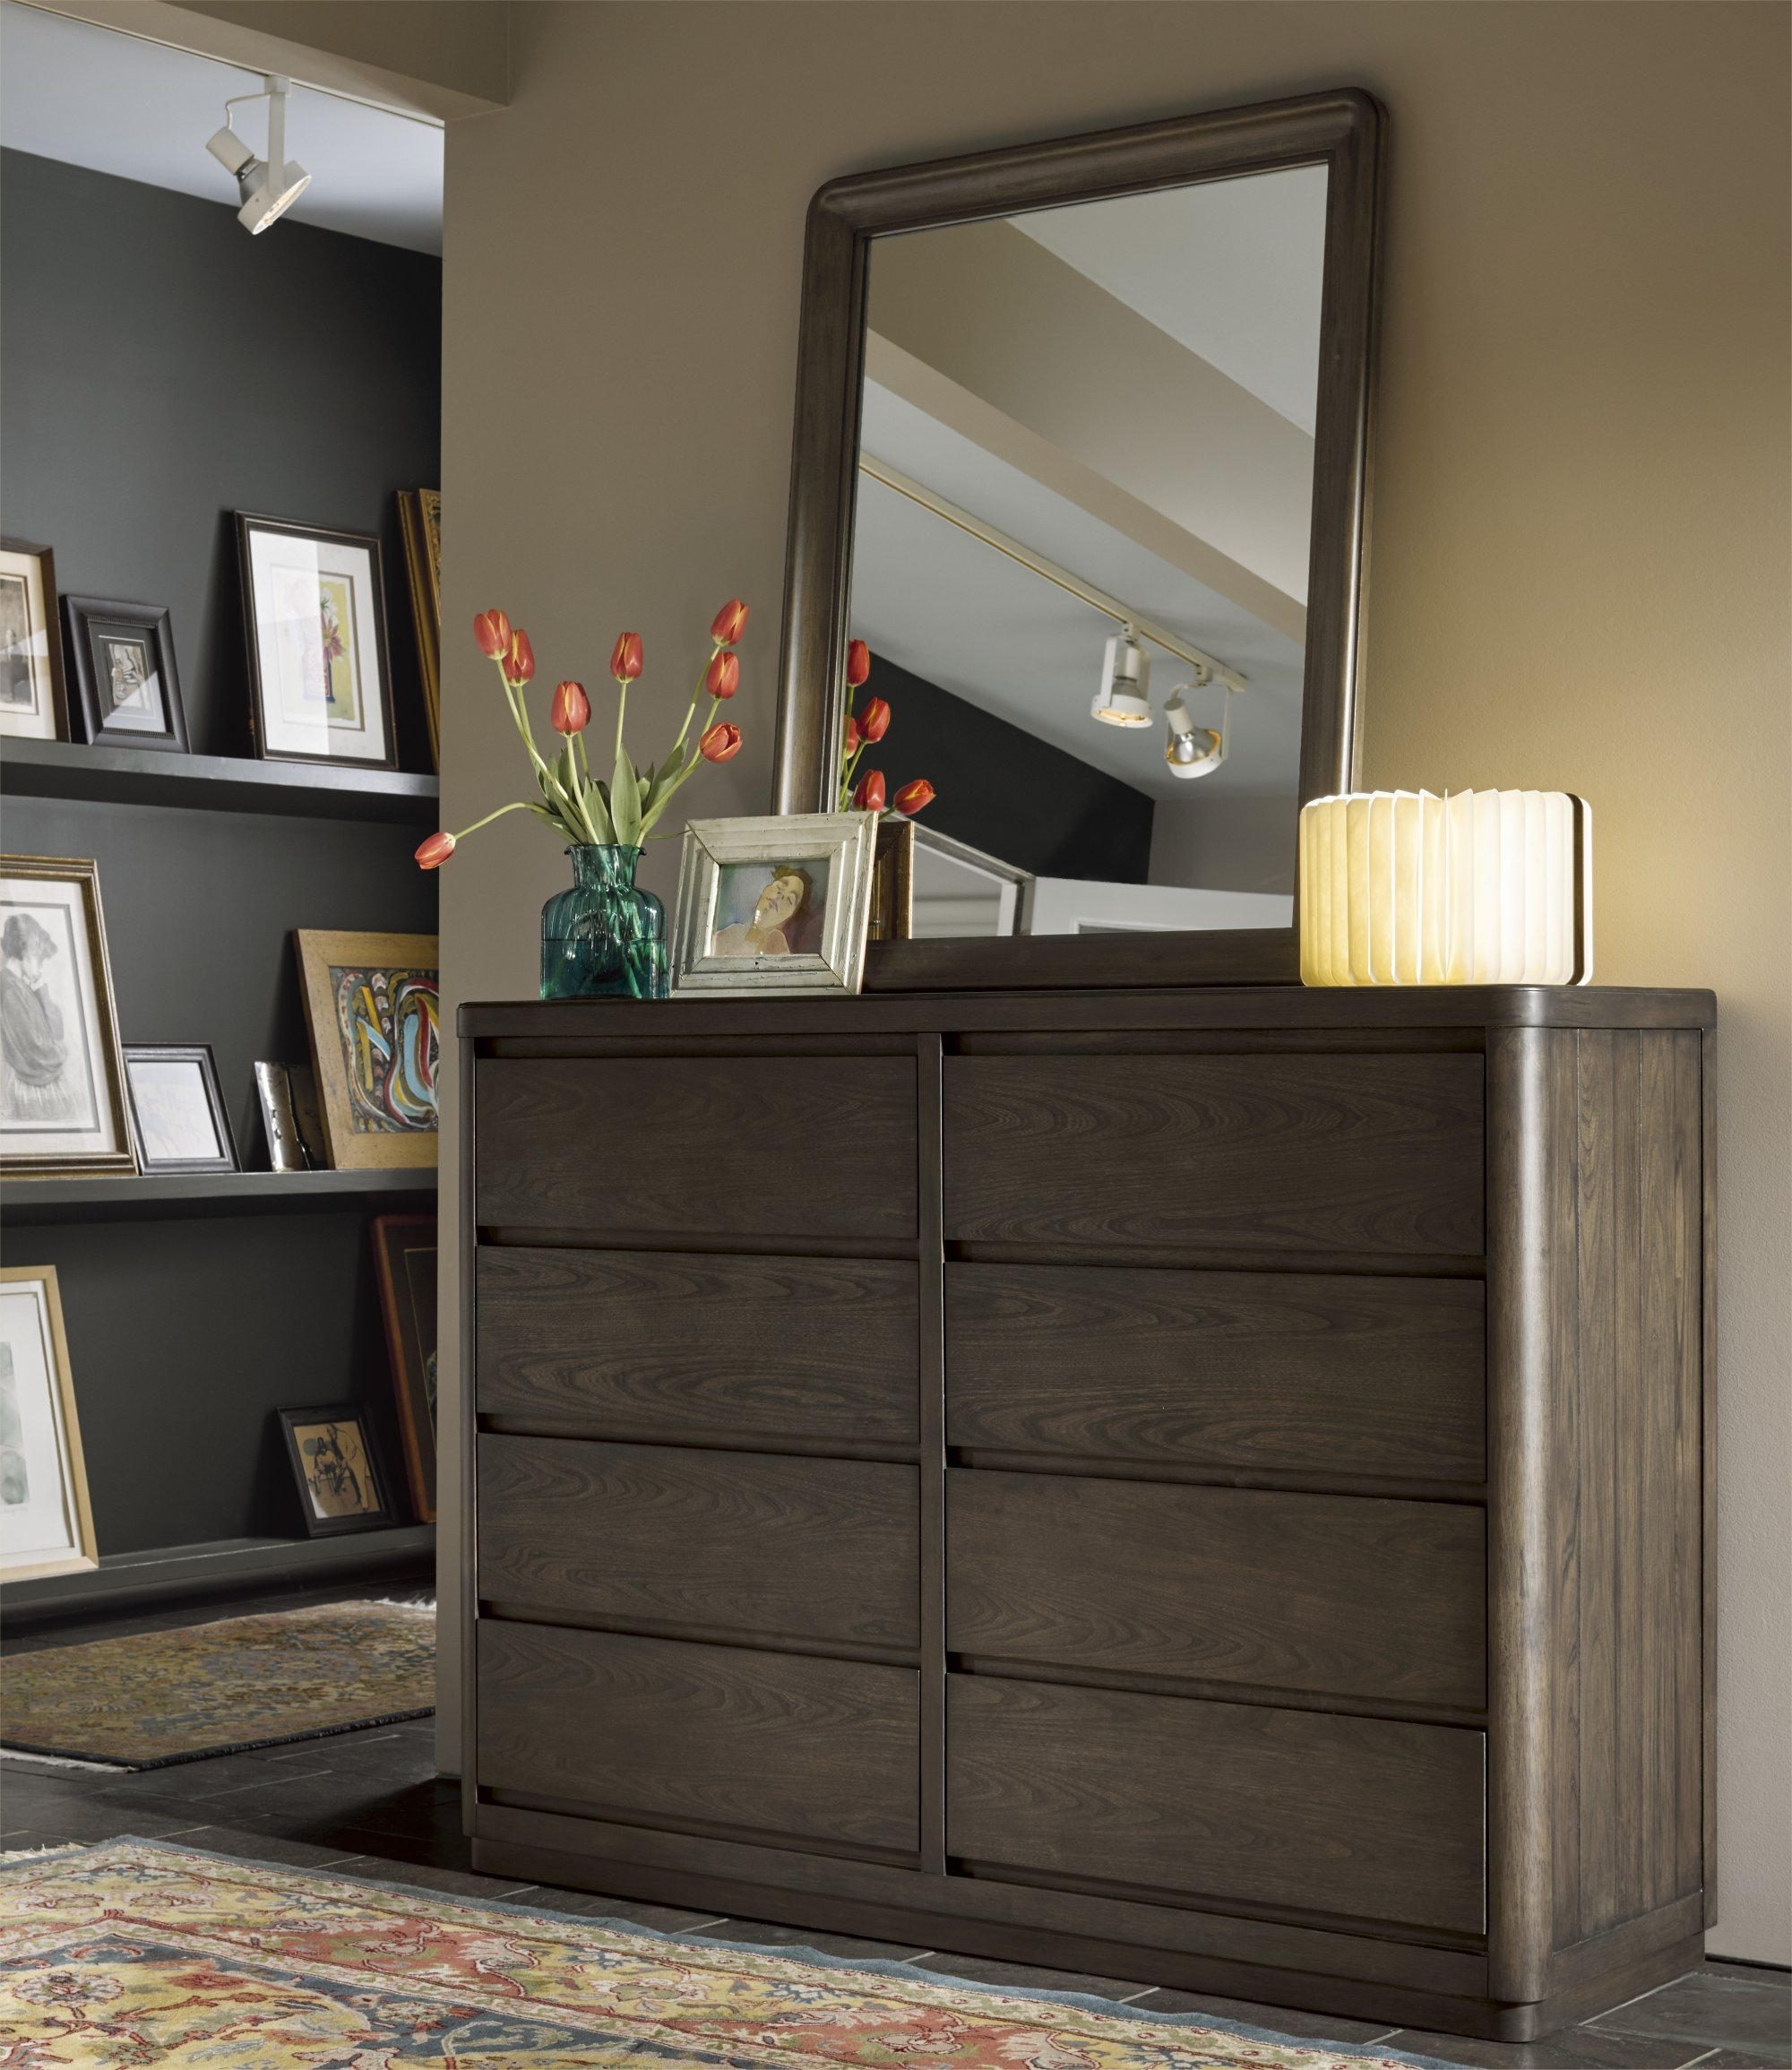 Curated Graphite Bedroom